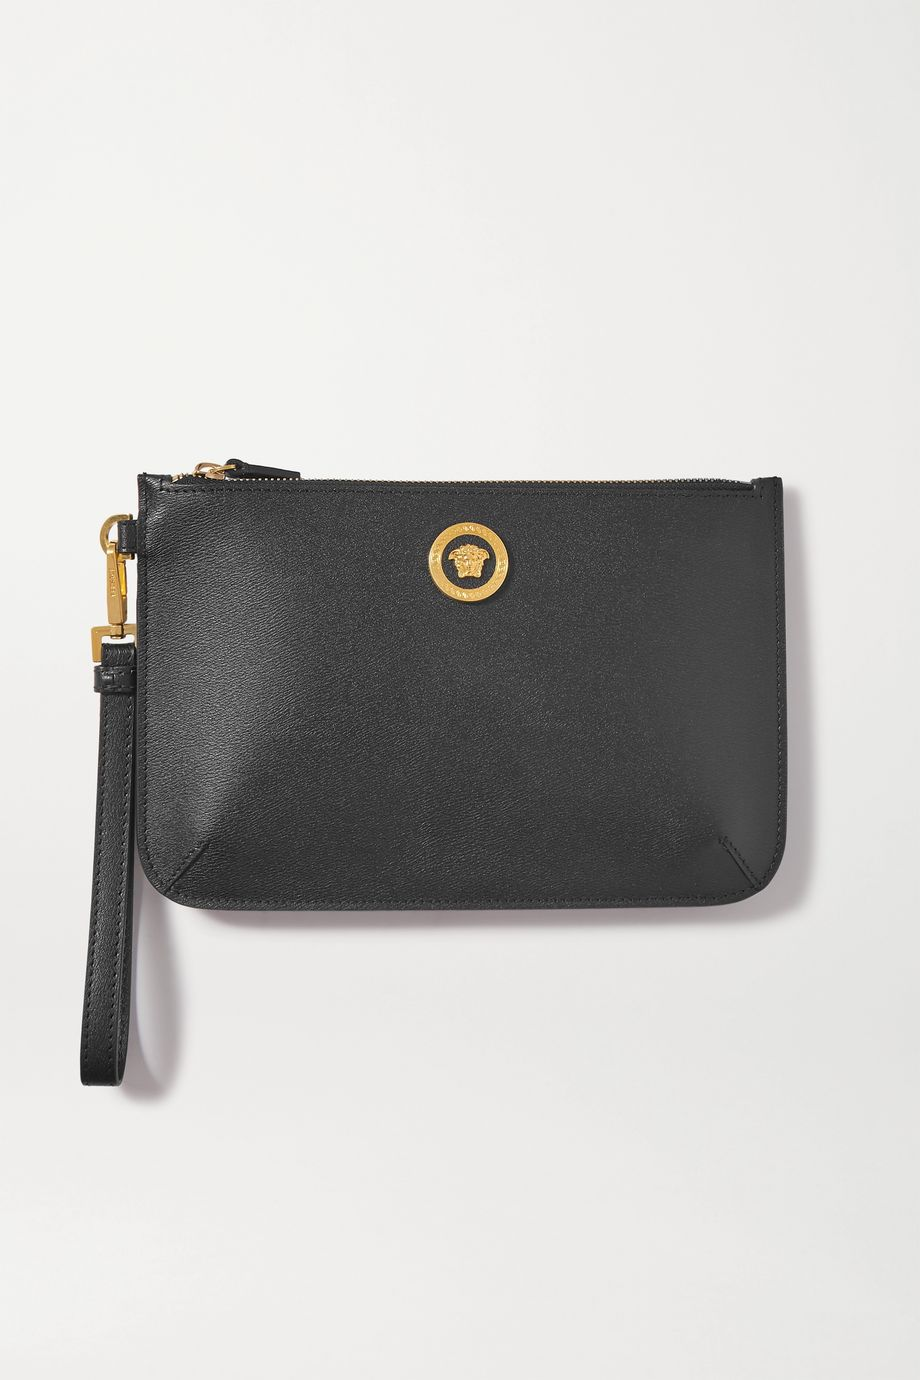 Versace Textured-leather pouch